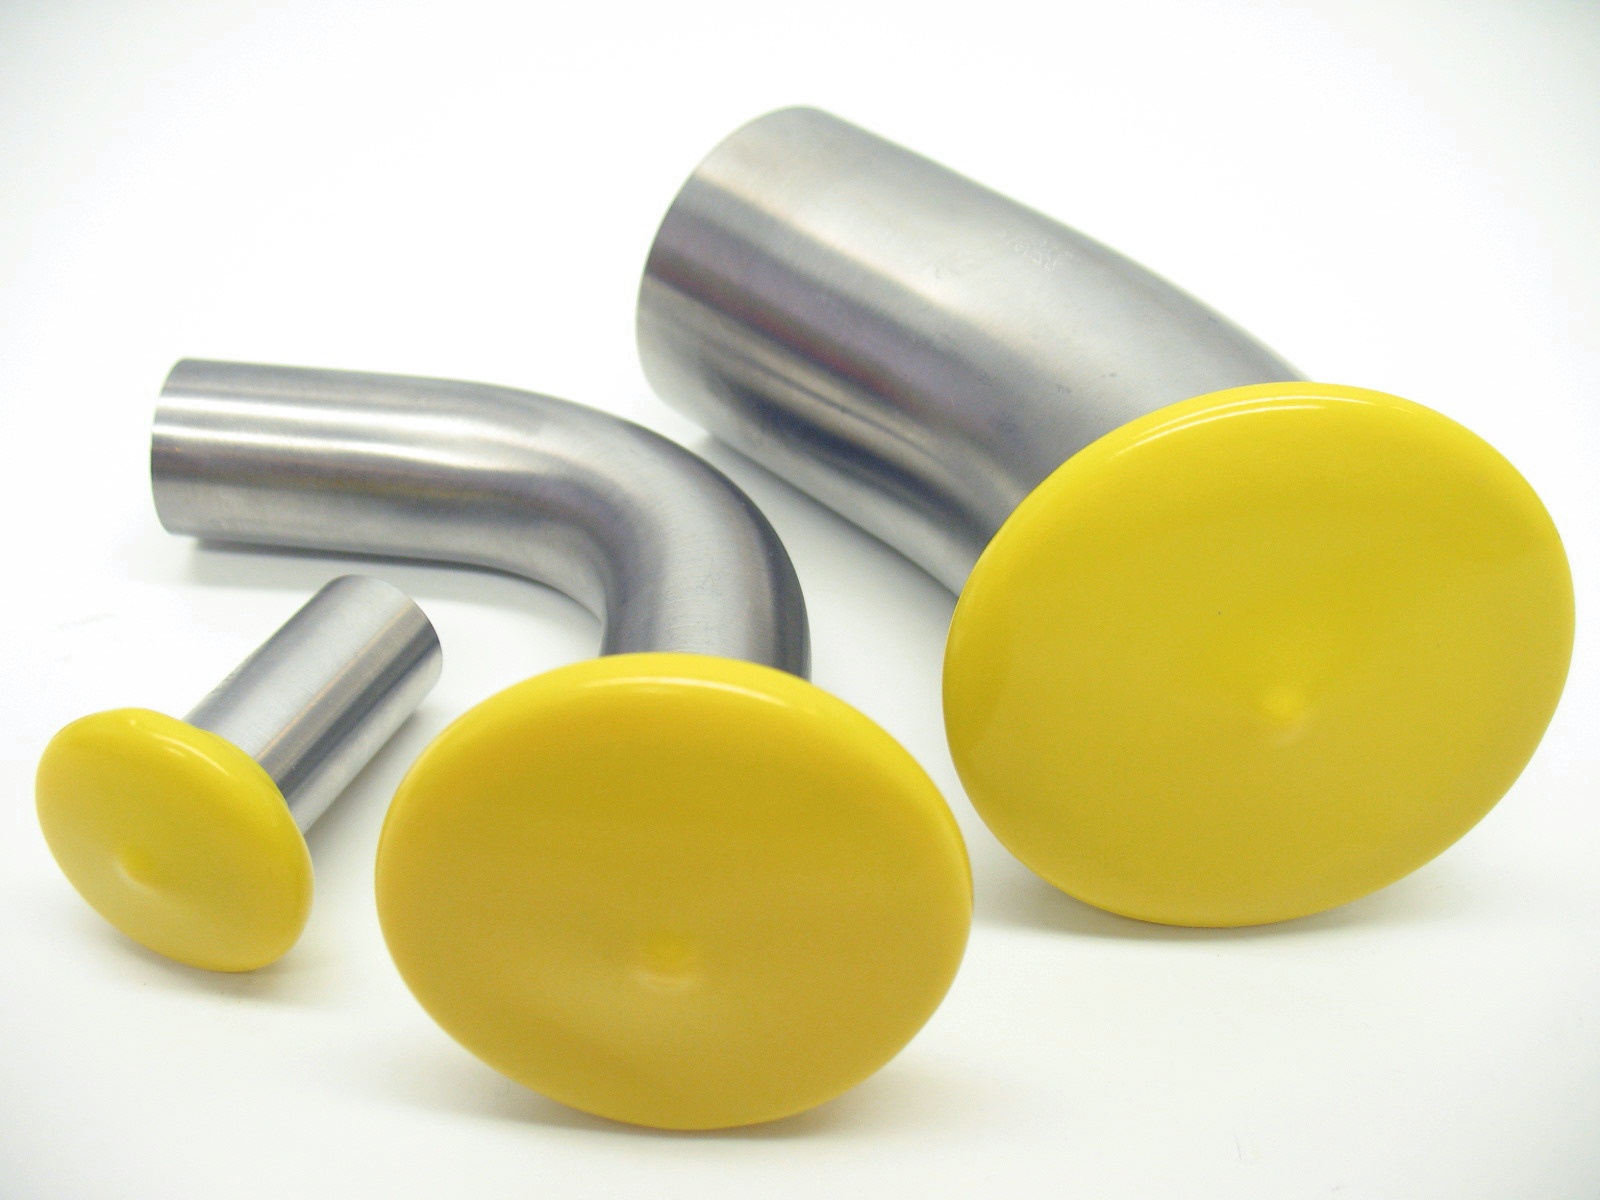 Sanitary tri clover flange protectors covers caps quot ebay